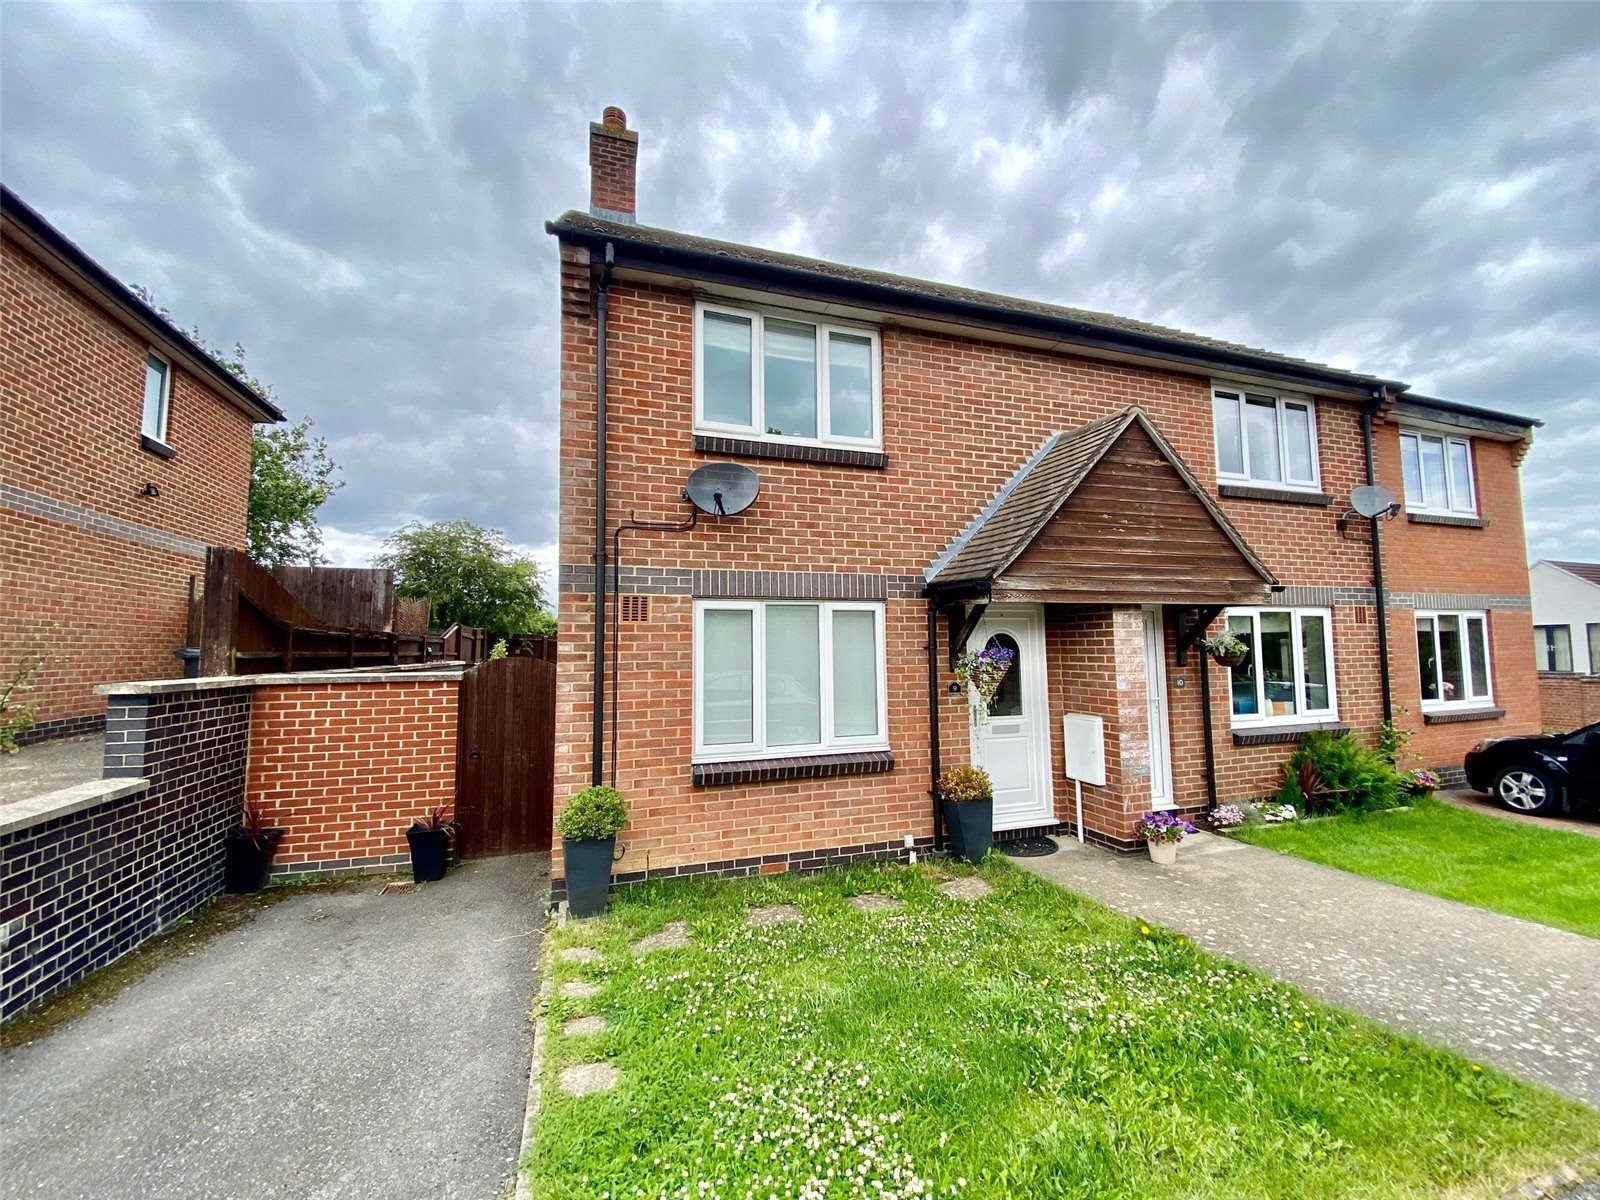 2 bed  for sale in Field Close, Abbotsley, PE19